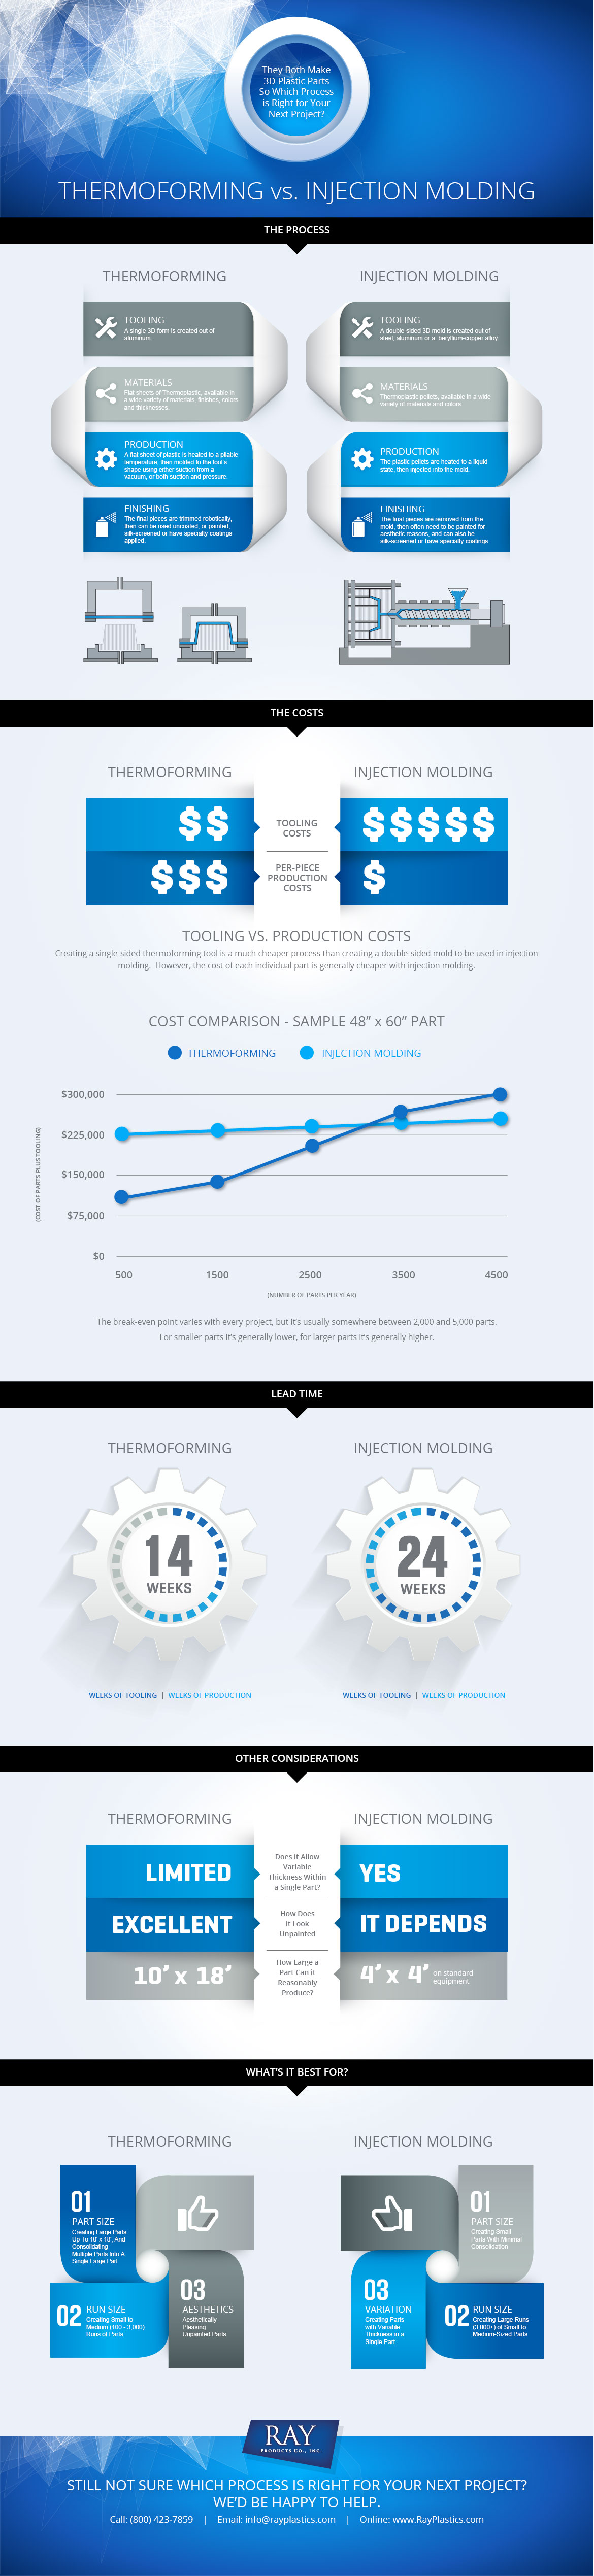 Thermoforming vs. Injection Molding Infographic